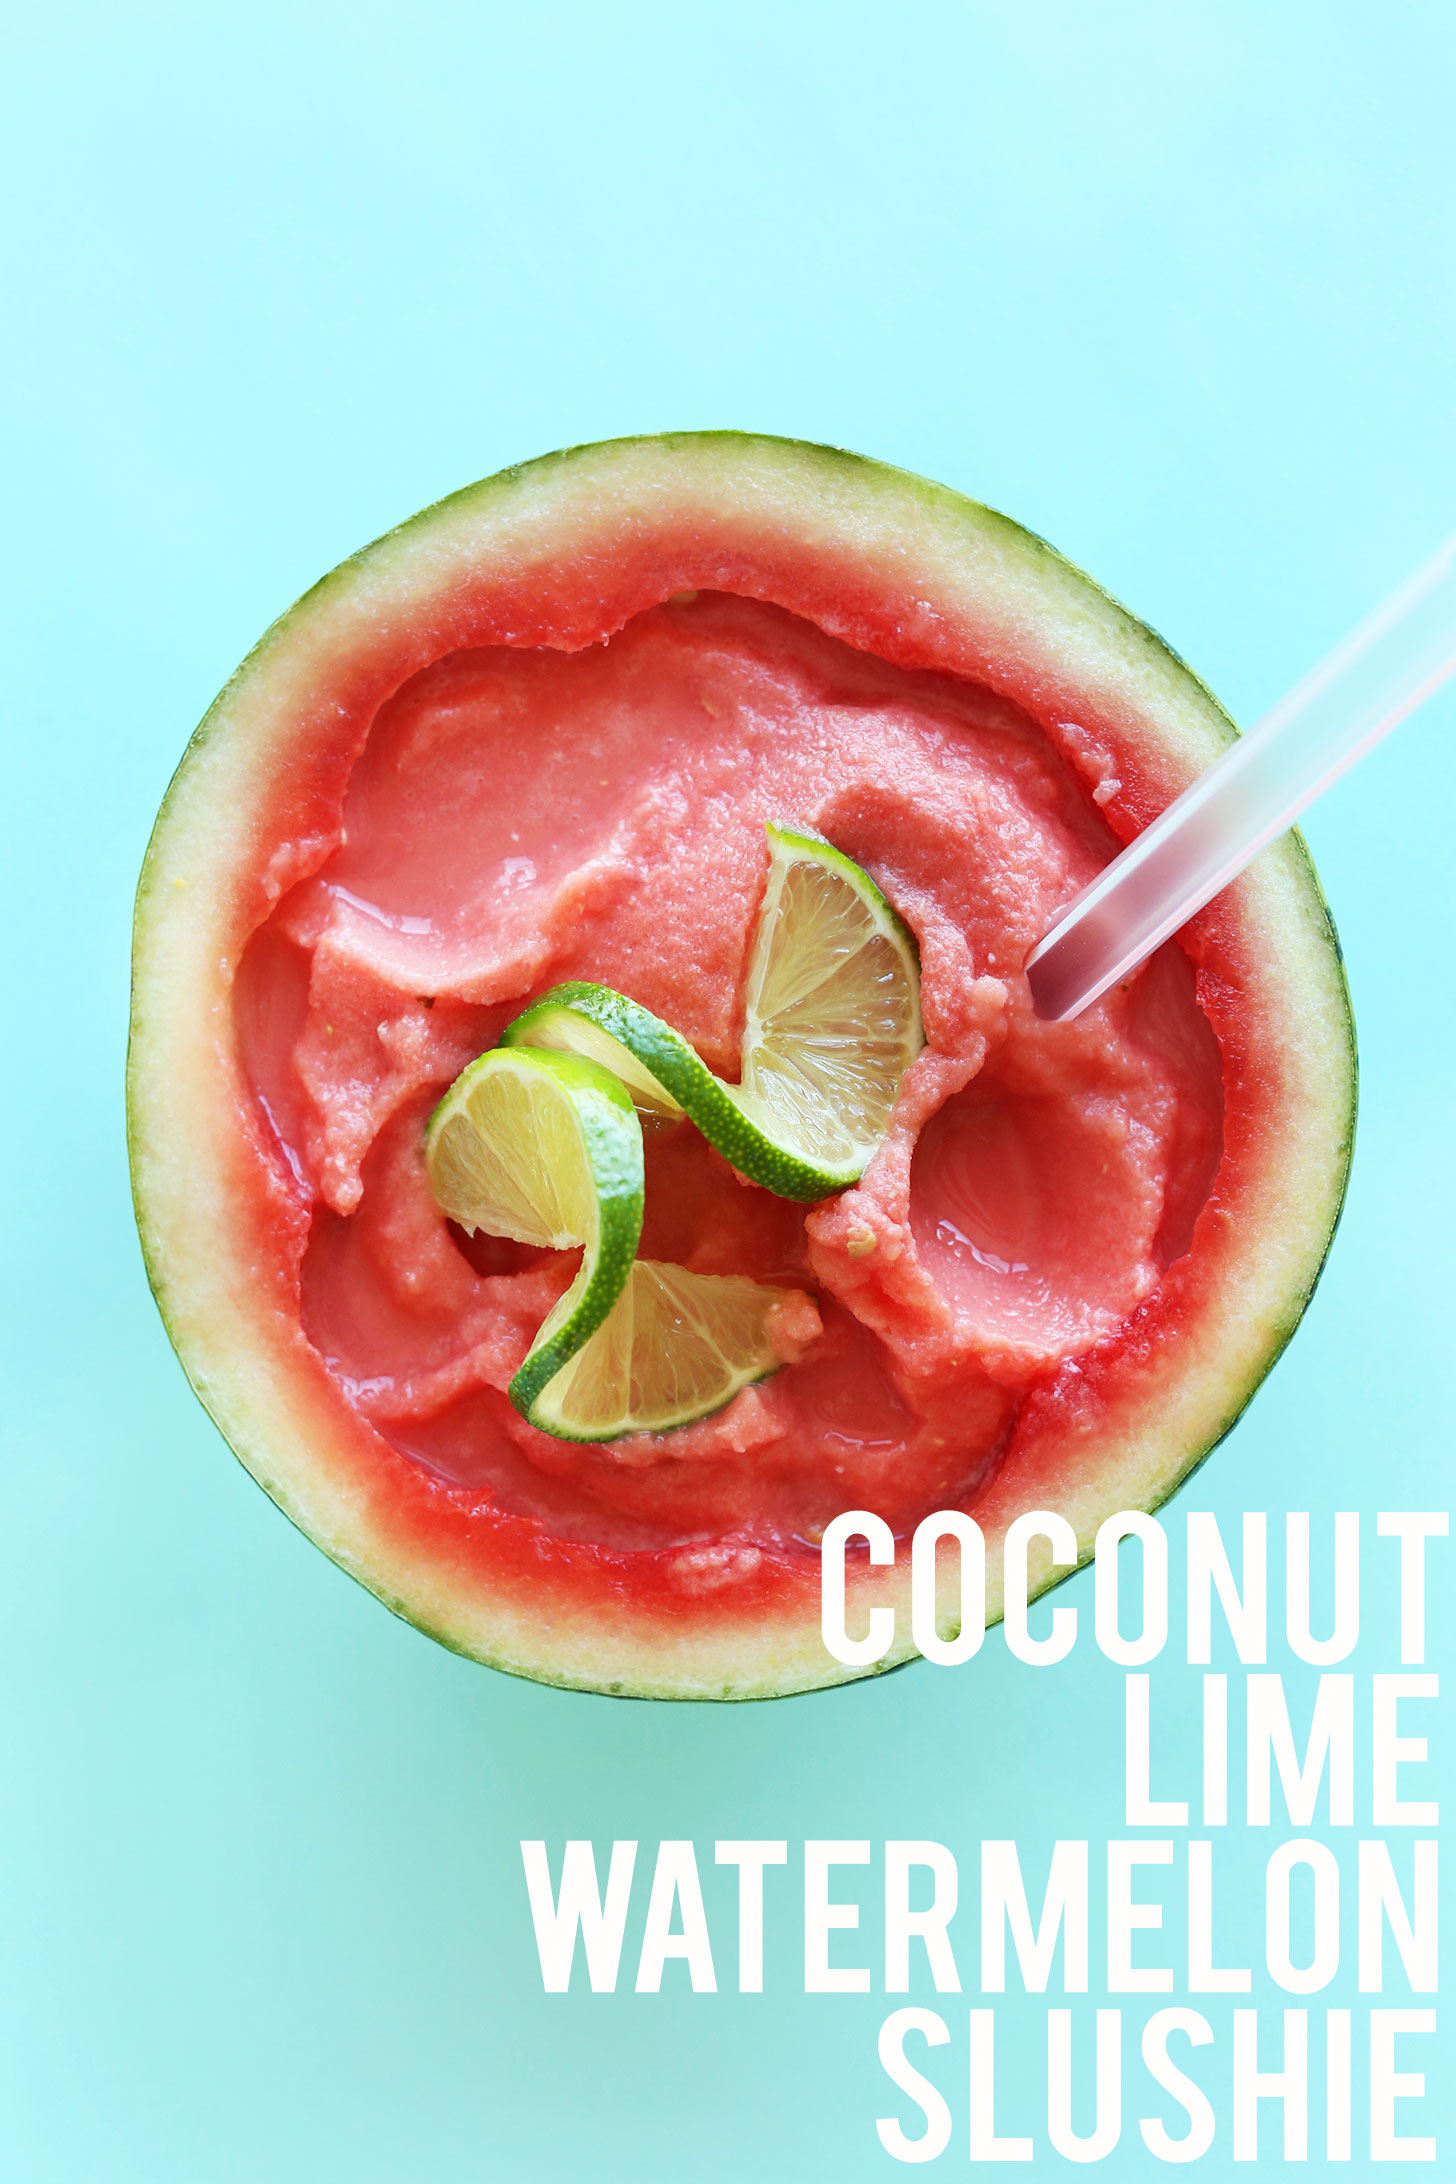 Coconut Lime Watermelon Slushie recipe in a halved watermelon